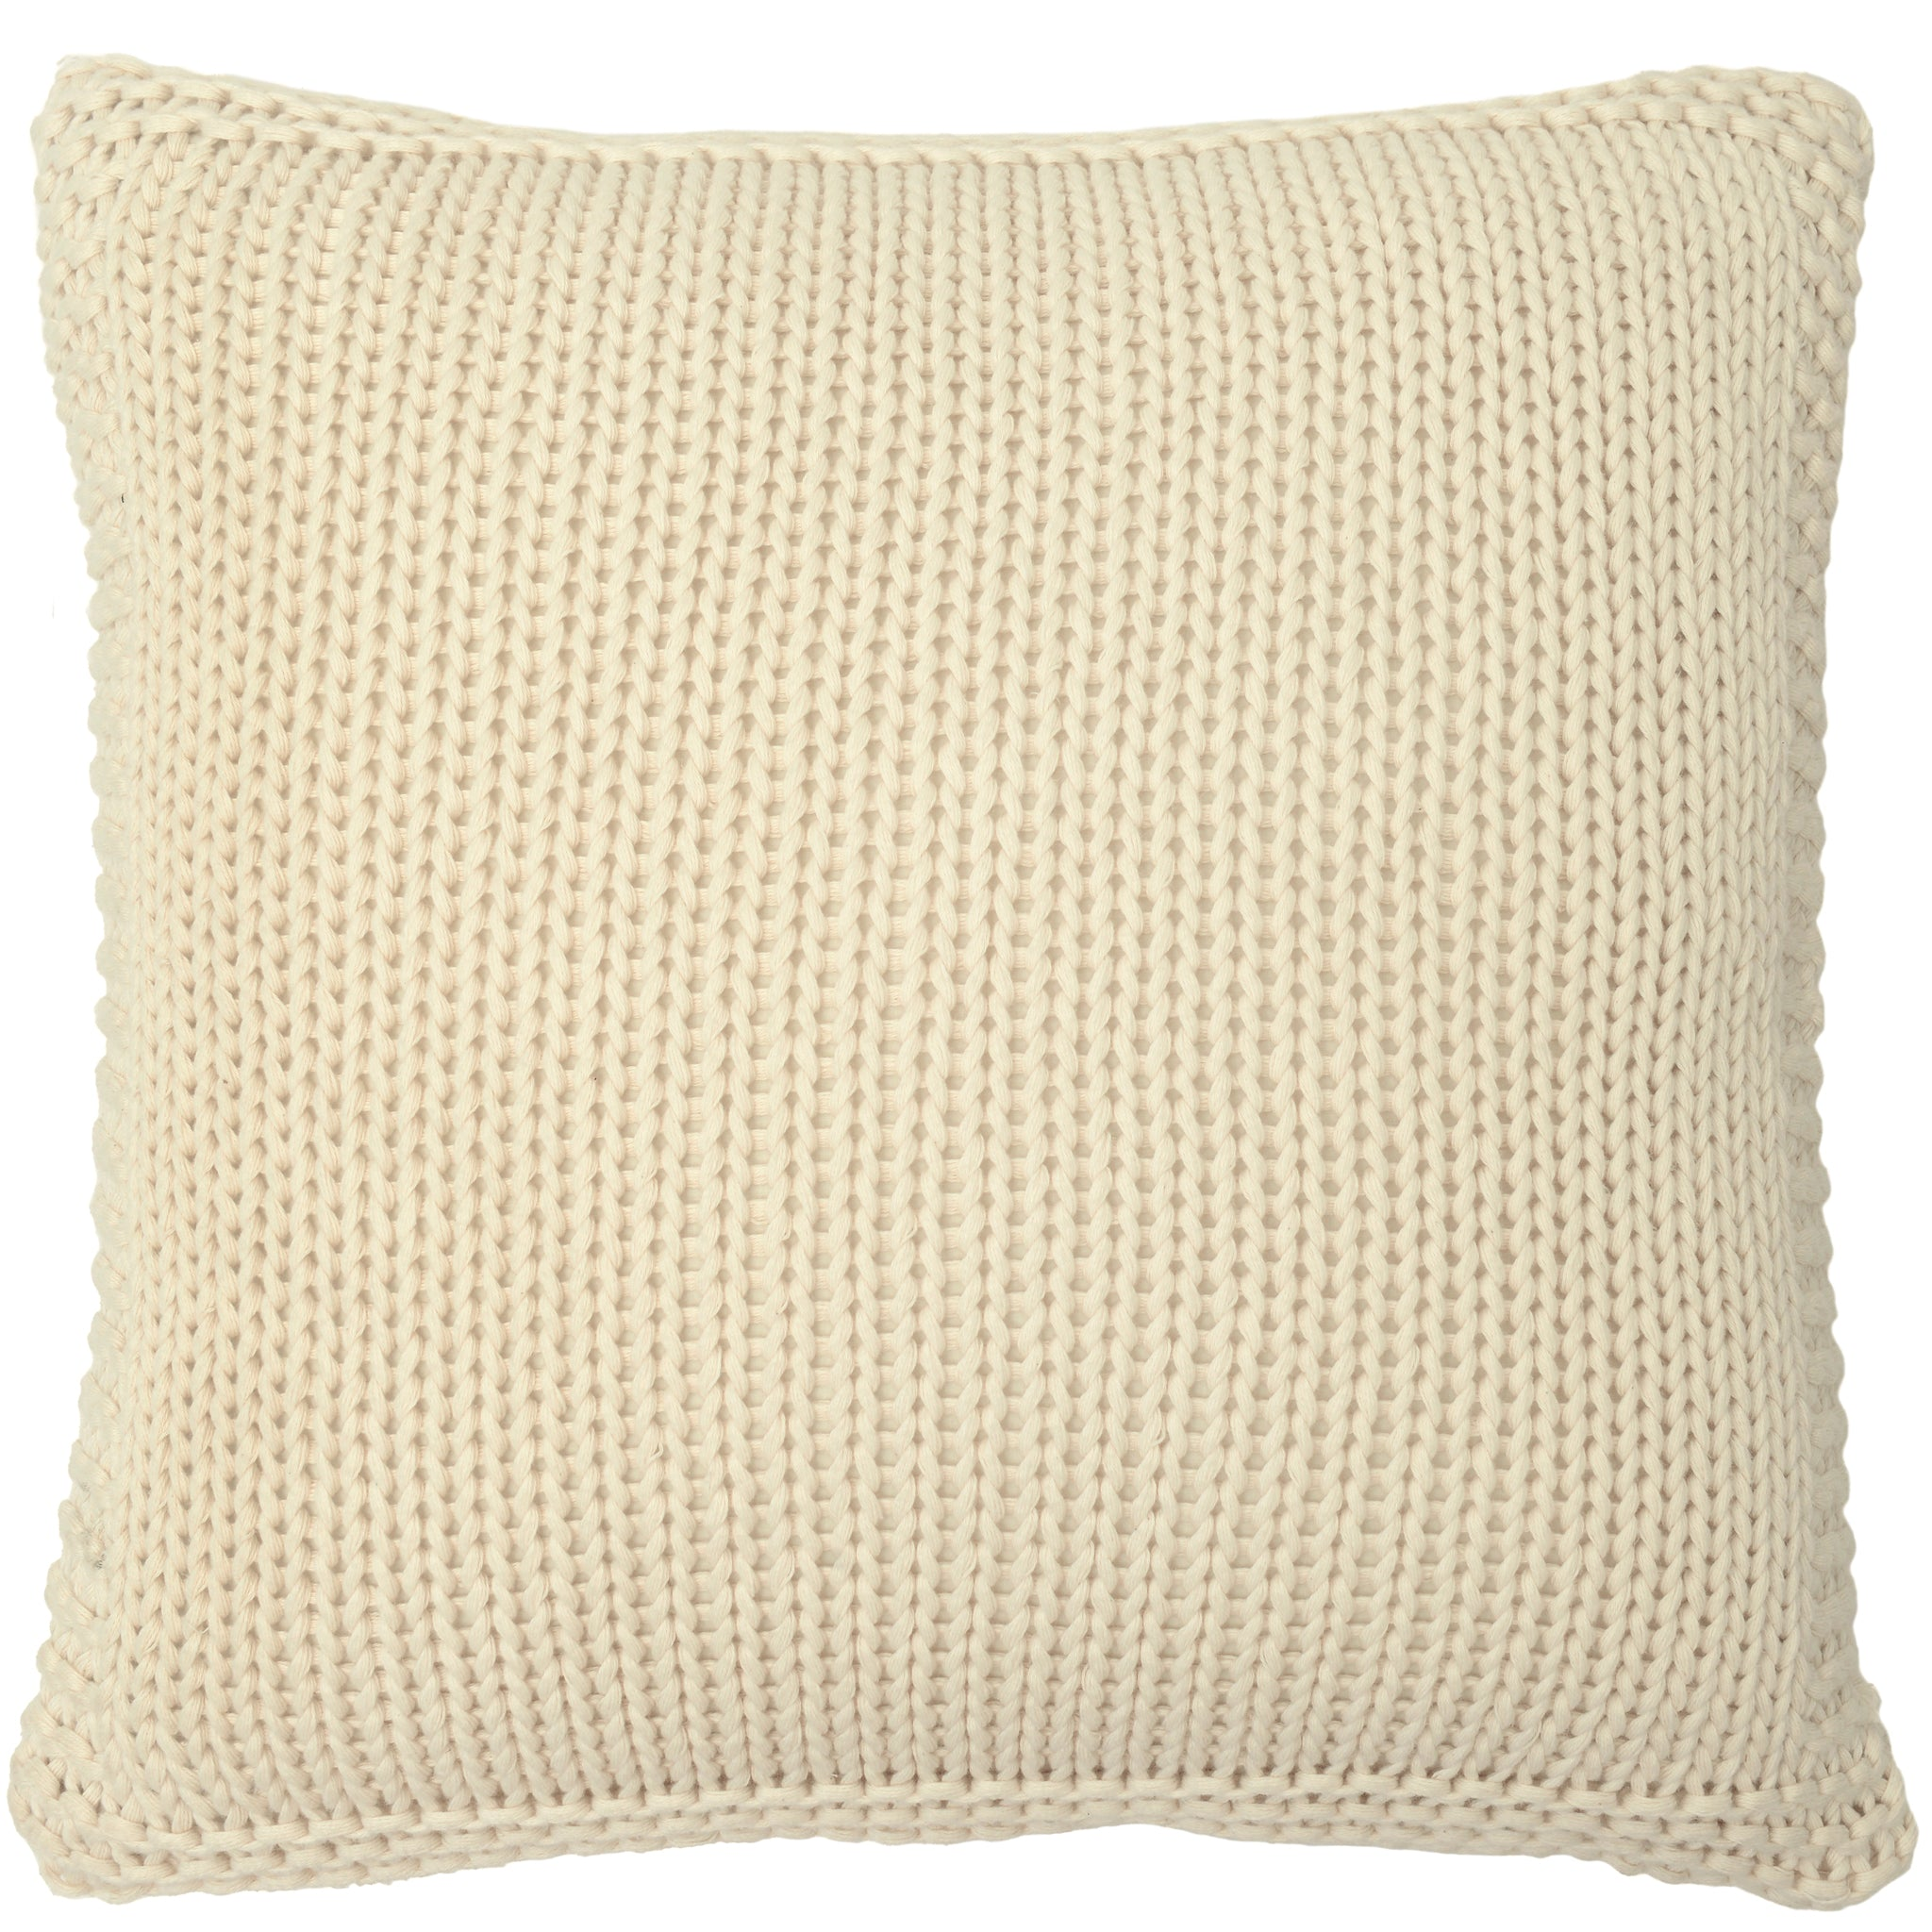 Harmony Pillow